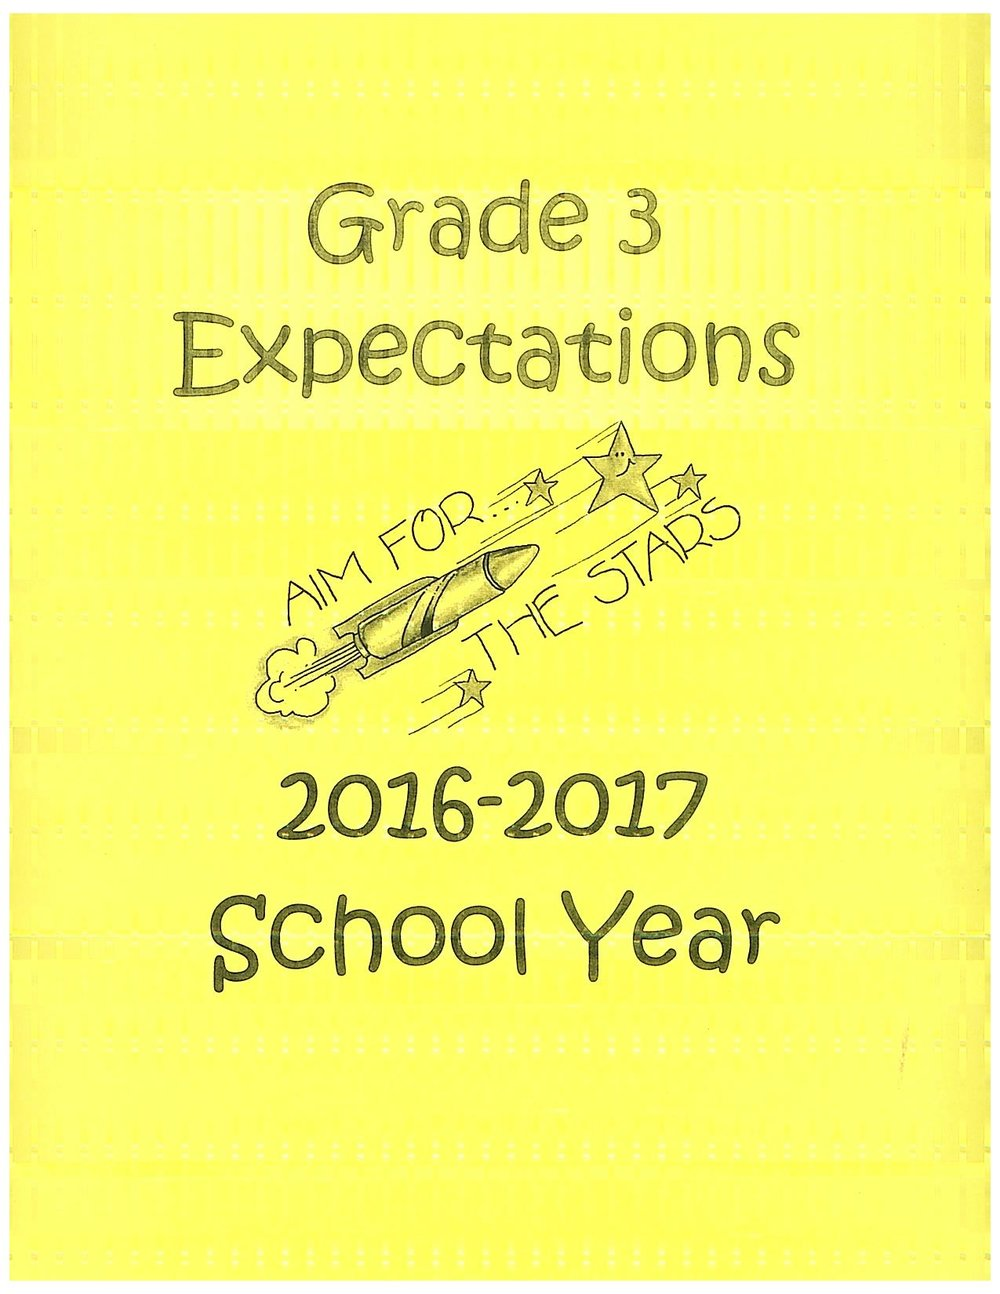 Grade 3 expectations